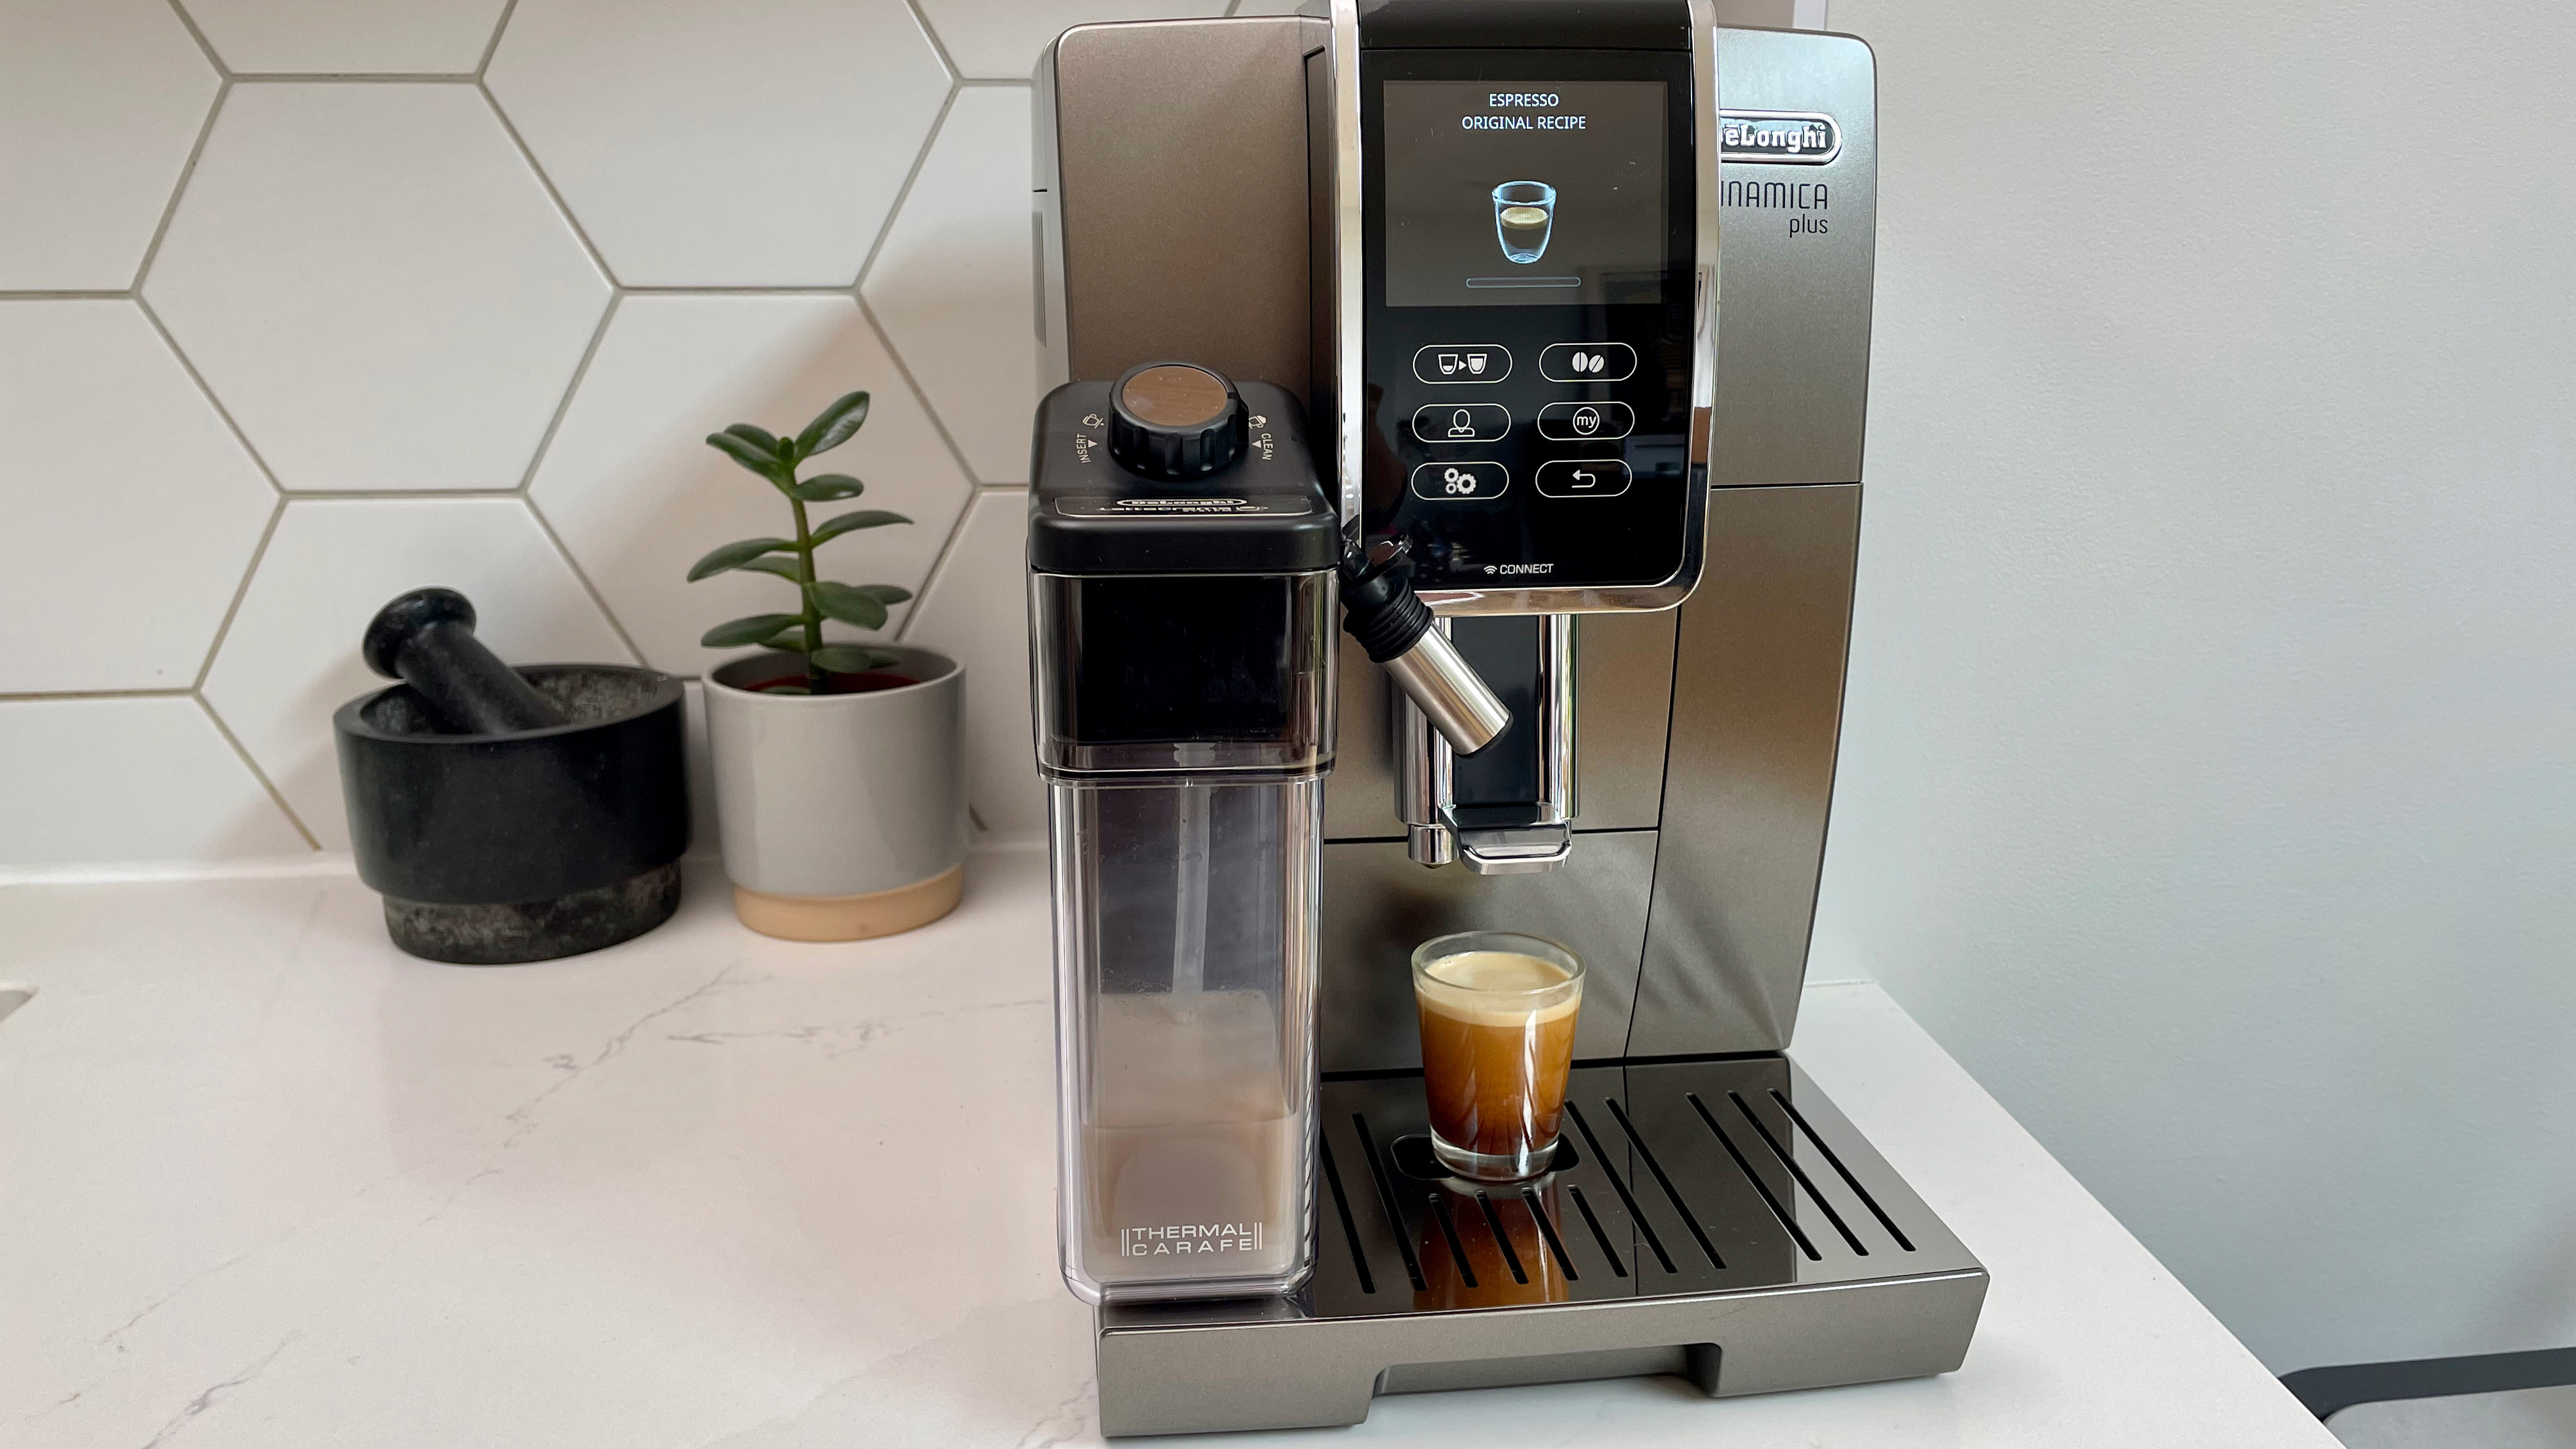 De'Longhi Dinamica Plus on a kitchen countertop being used to make an espresso